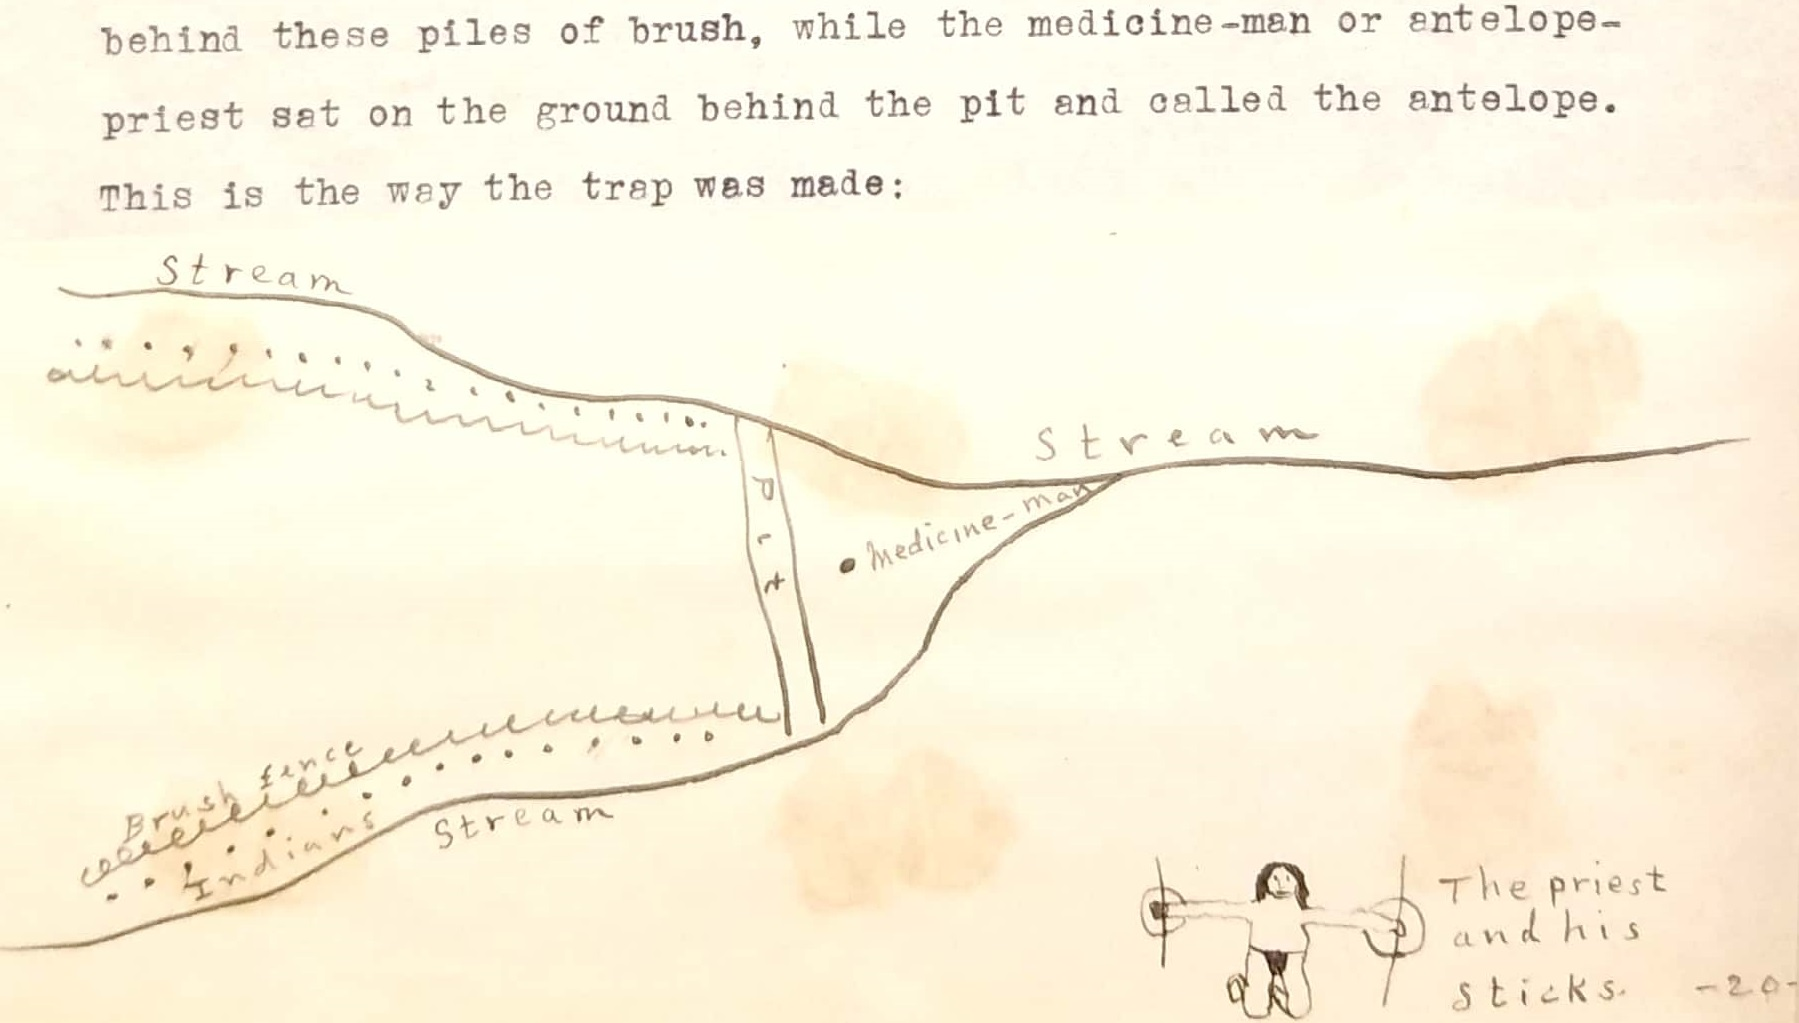 Excerpt from a description of an antelope hunt with attached diagram, from50Years Among the Cheyennes, by George Bent